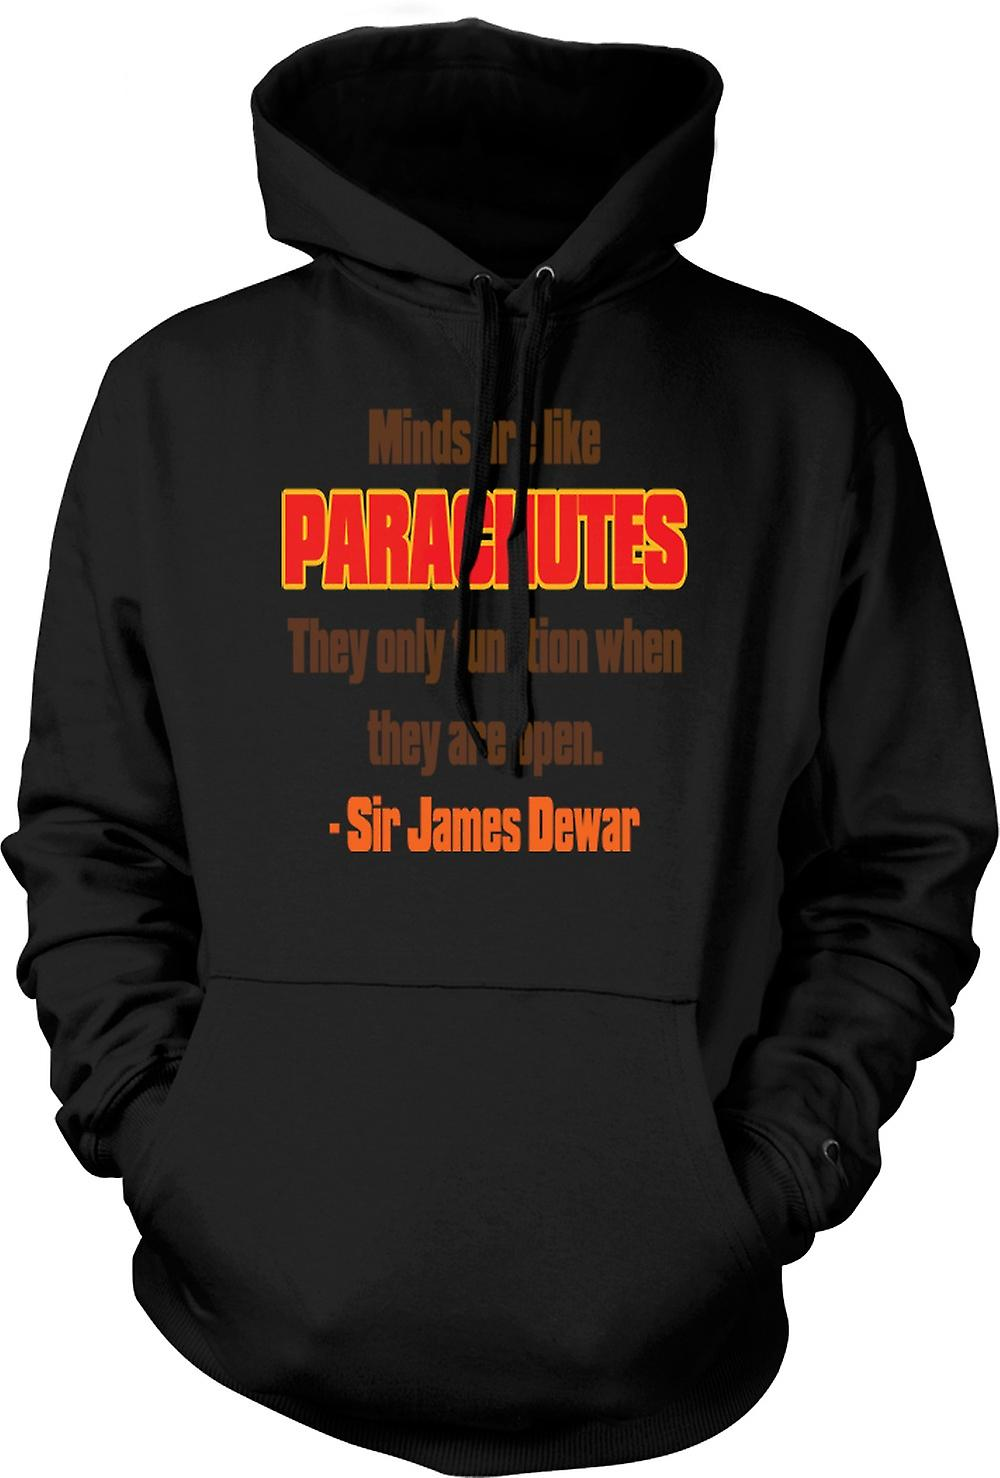 Mens Hoodie - menti sono come paracadute preventivo - Sir James Dewar